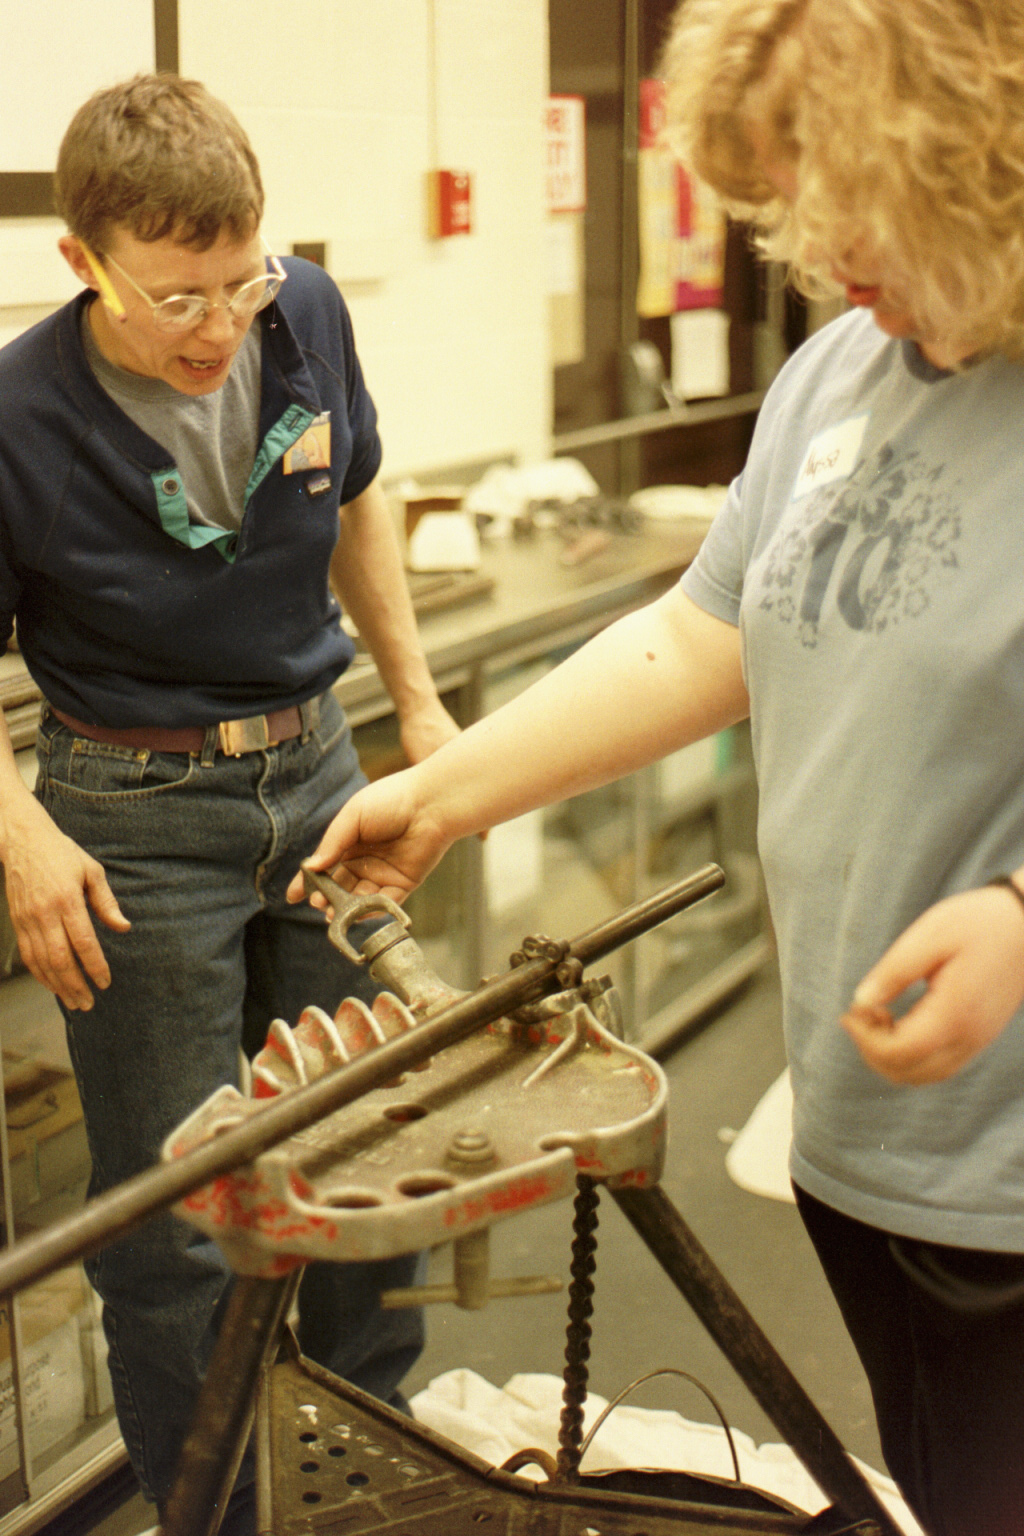 Instructor looks on as participant uses tool